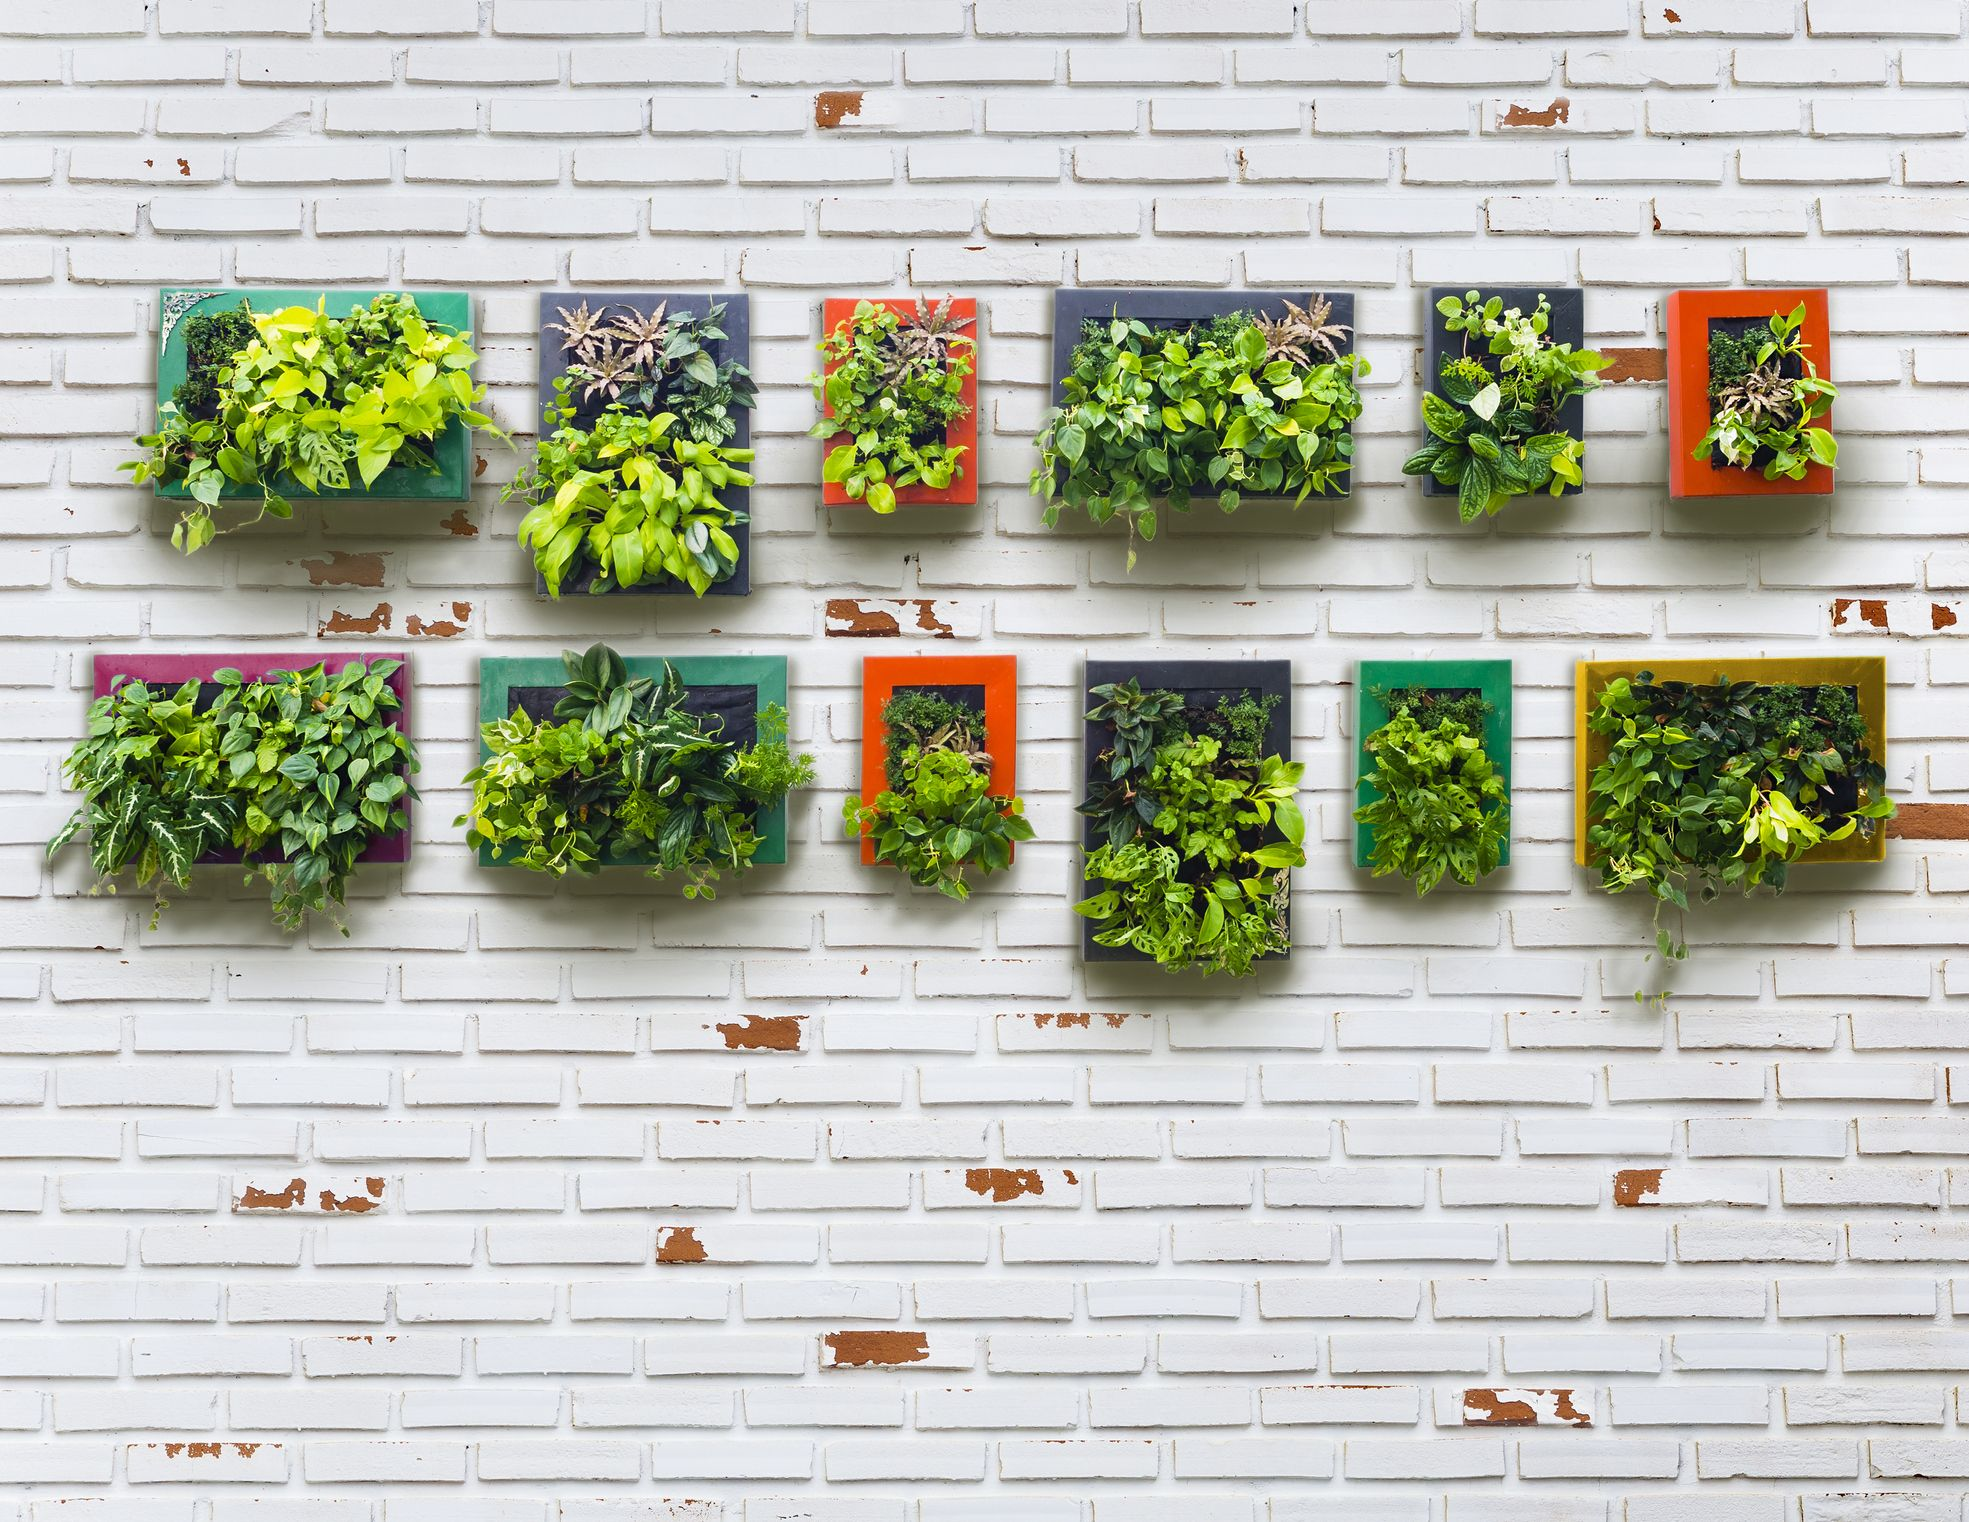 30+ creative ways to plant a vertical garden - how to make a